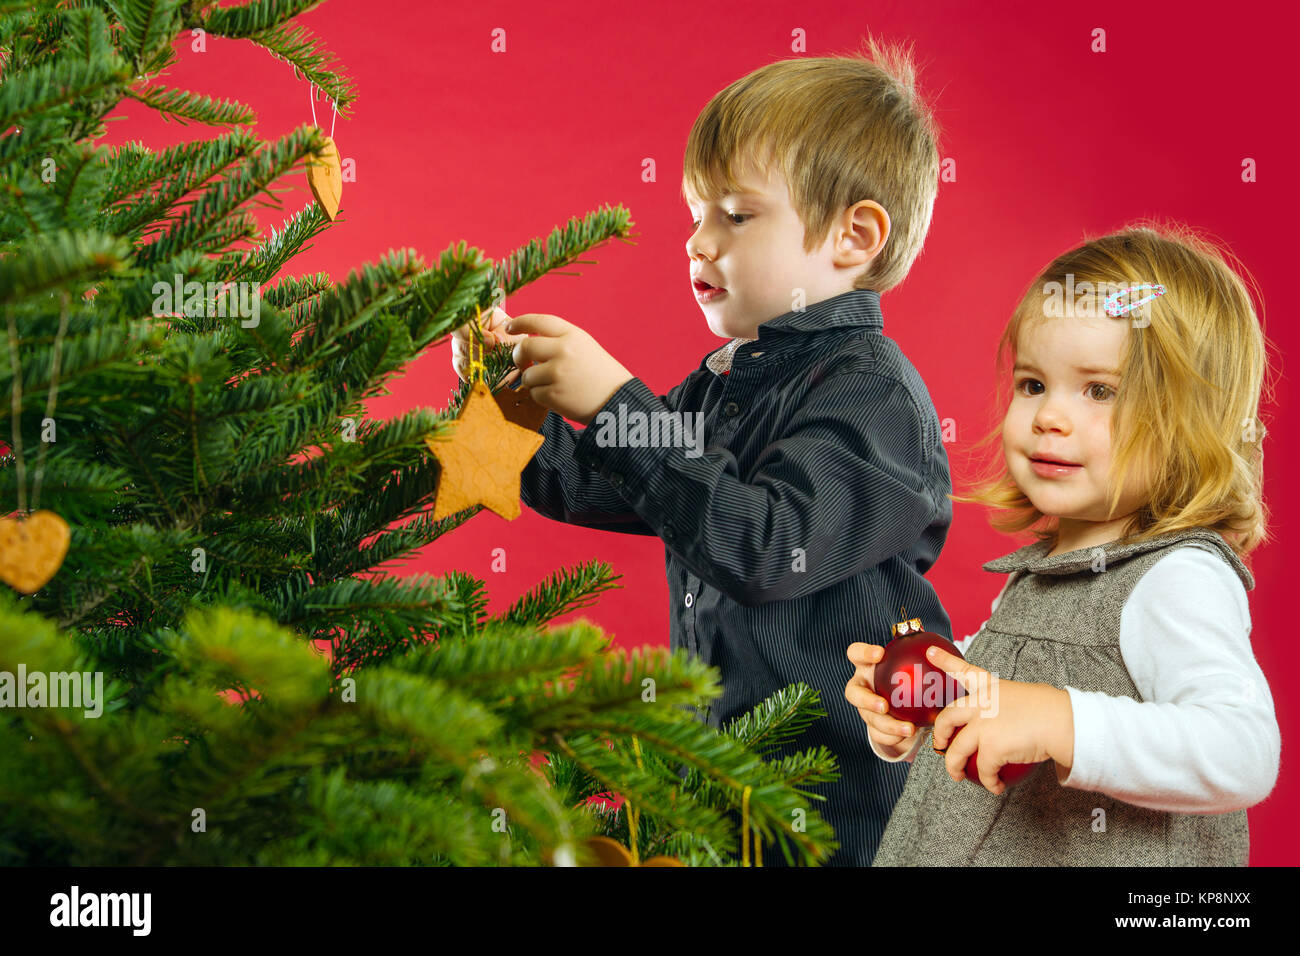 Brother and sister hanging Christmas tree decorations - Stock Image